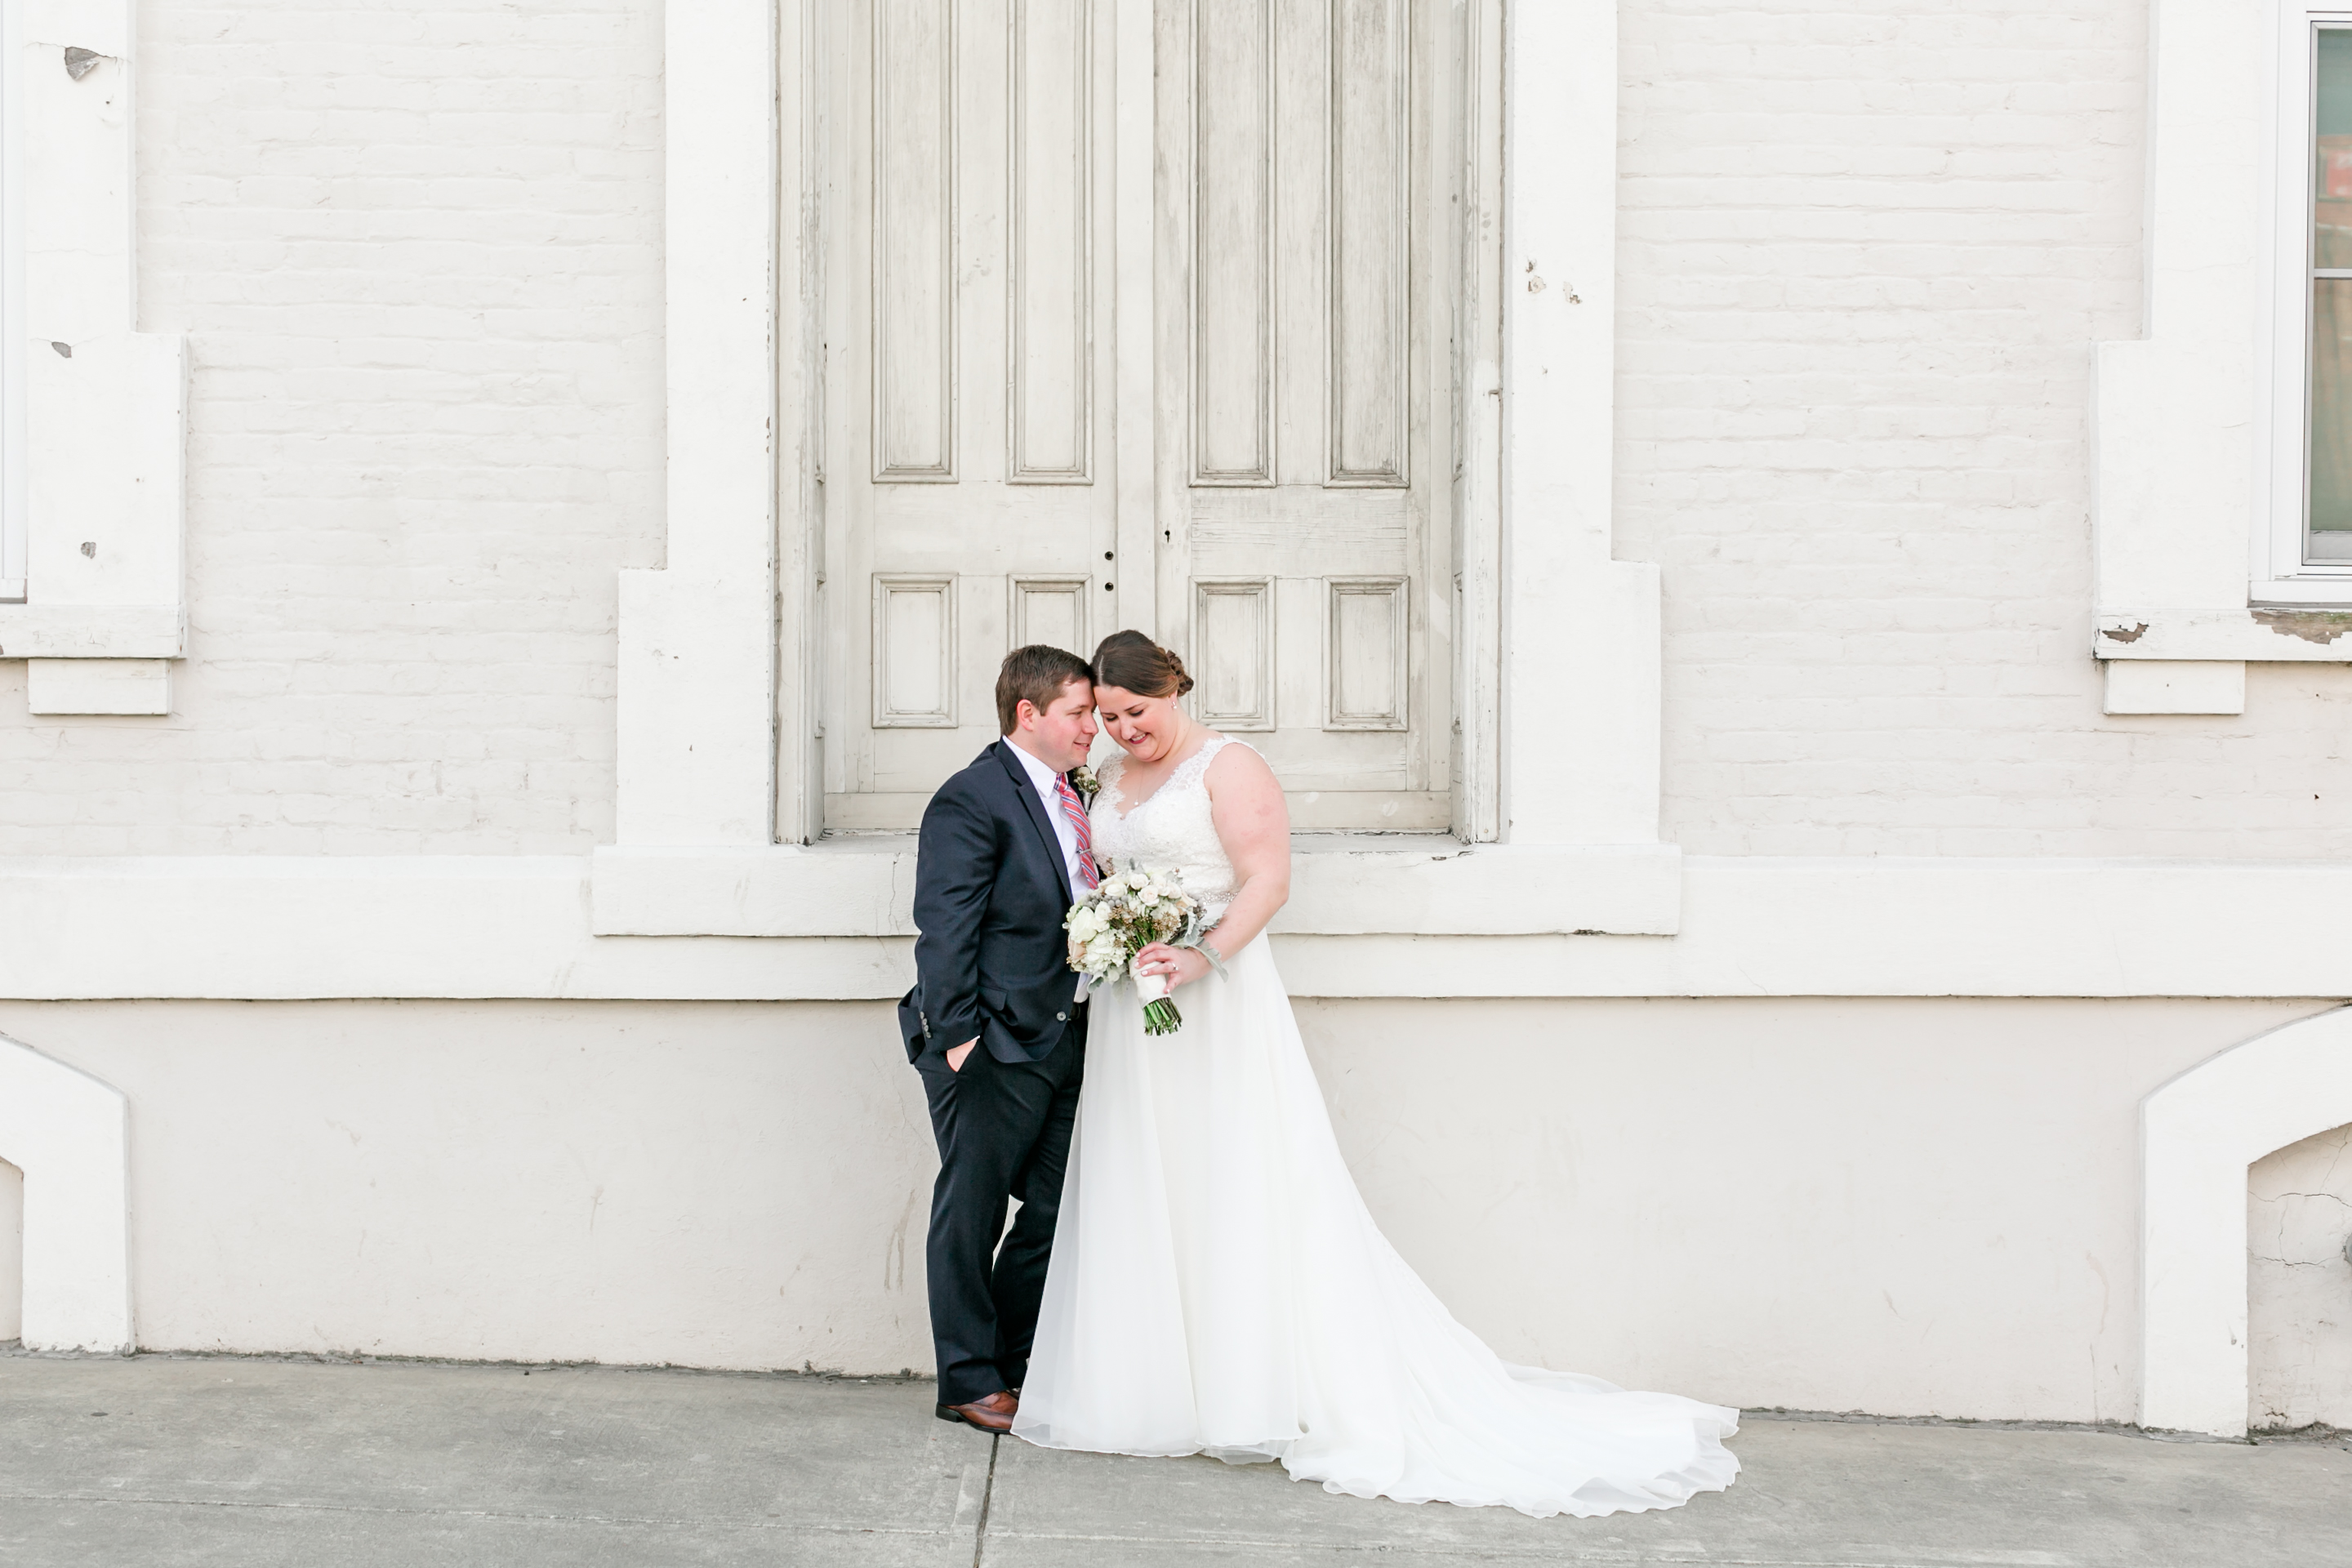 new york bride groom wedding dress raleigh nc